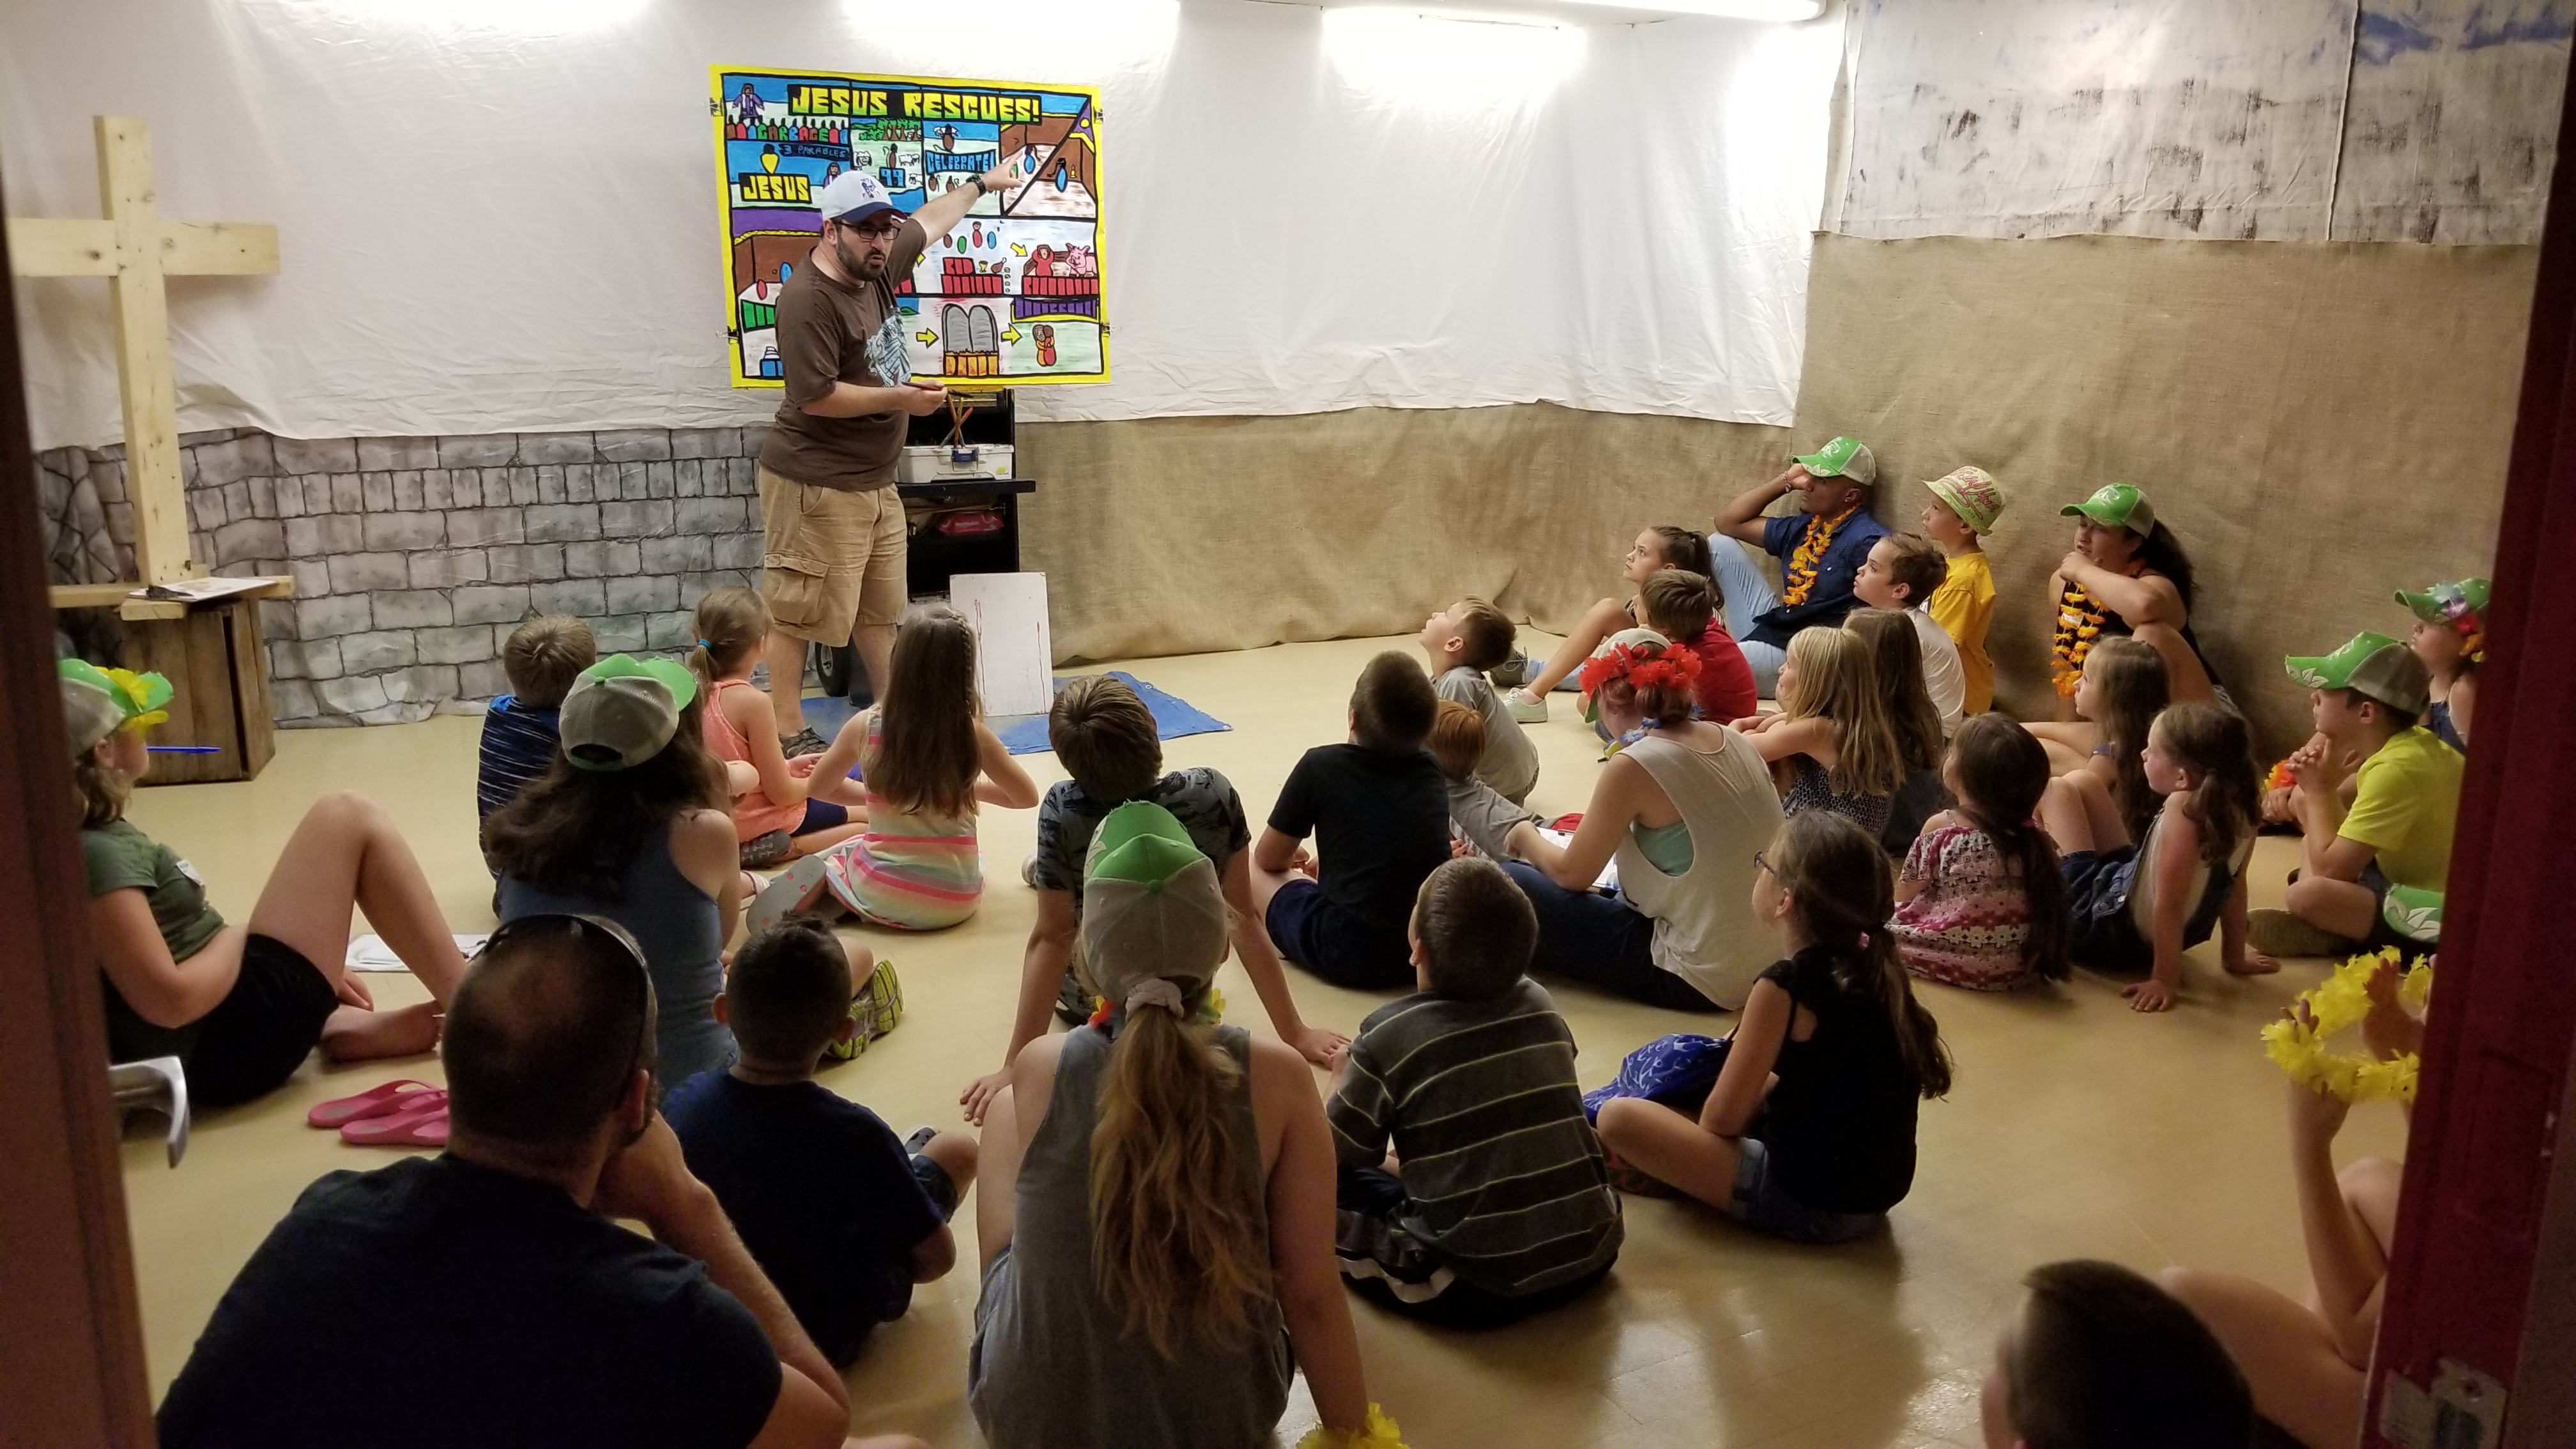 Night #1 of VBS. This was a new Church for me, and I was so happy to have been invited to help with their outreach!